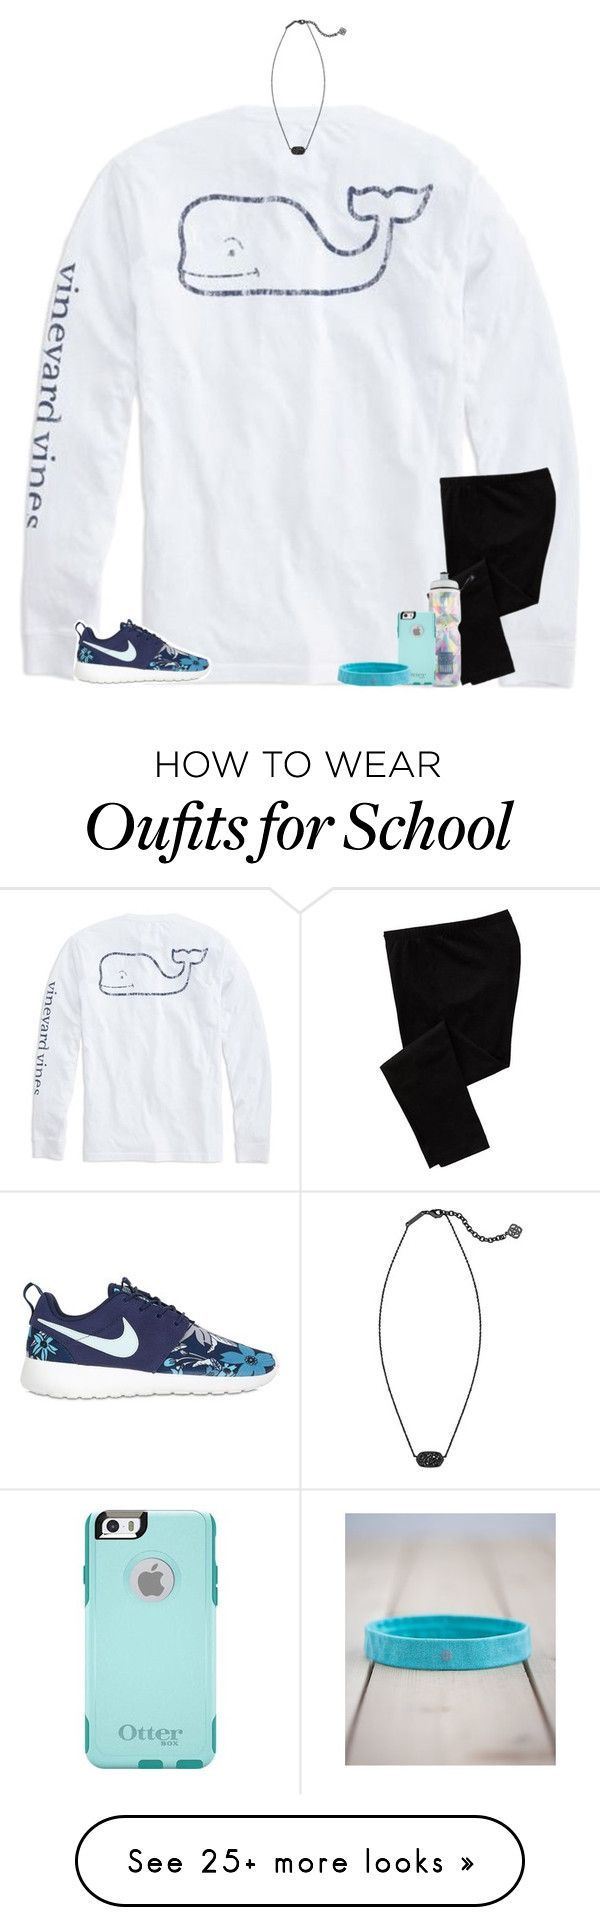 ew school tomorrow by secfashion13 on Polyvore featuring Vineyard Vines, Old Navy, NIKE, Kendra Scott, Victorias Secret, OtterBox and lululemon